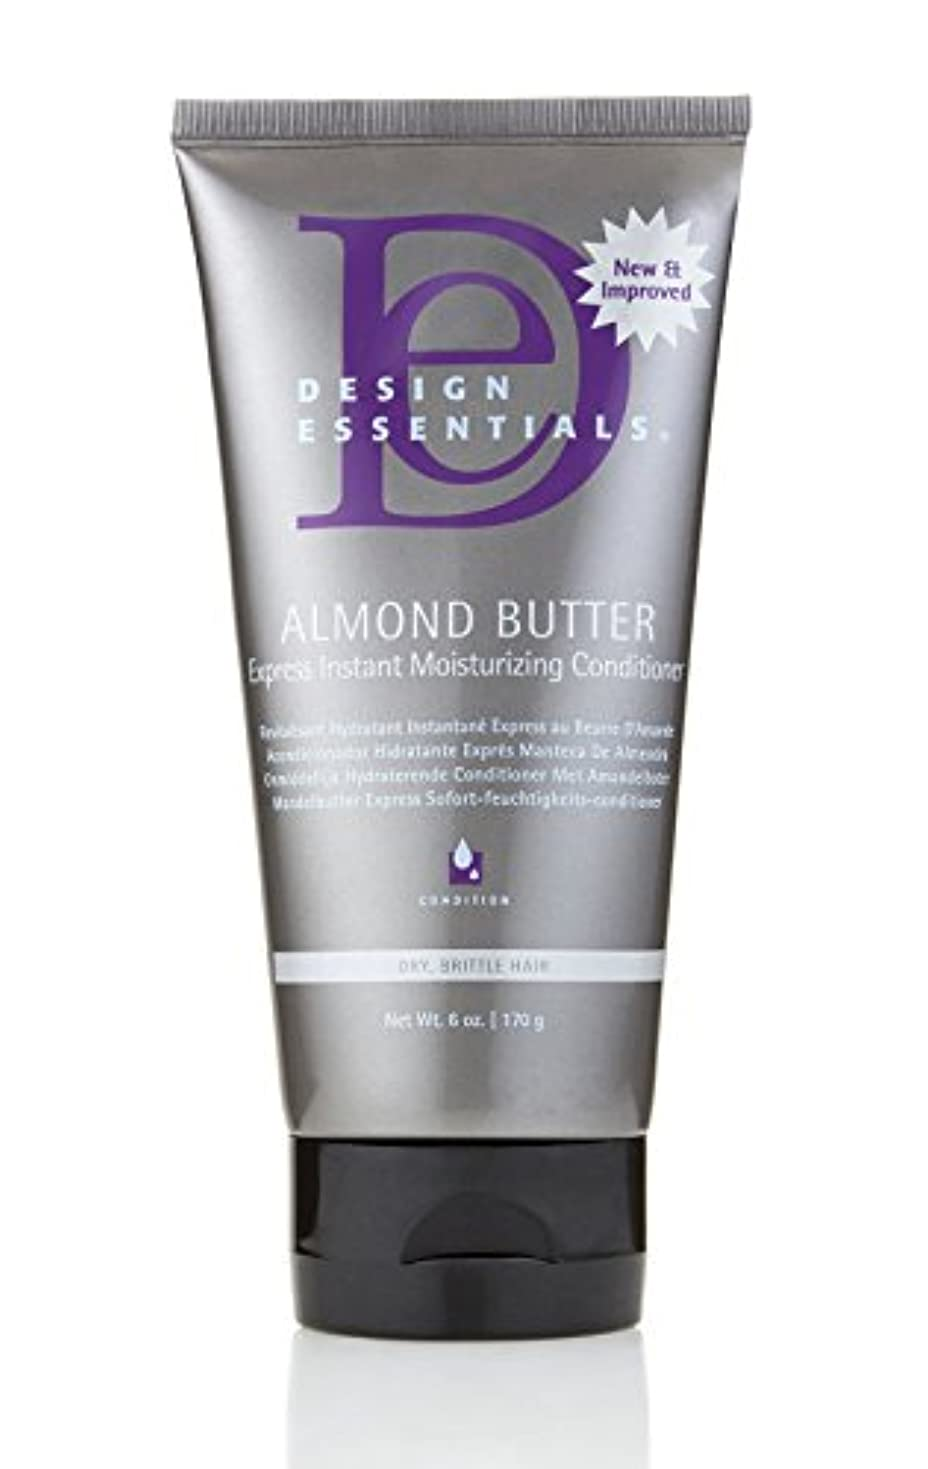 サンダース彼女犬Design Essentials Almond Butter Express Instant Moisturizing Conditioner - 6oz.